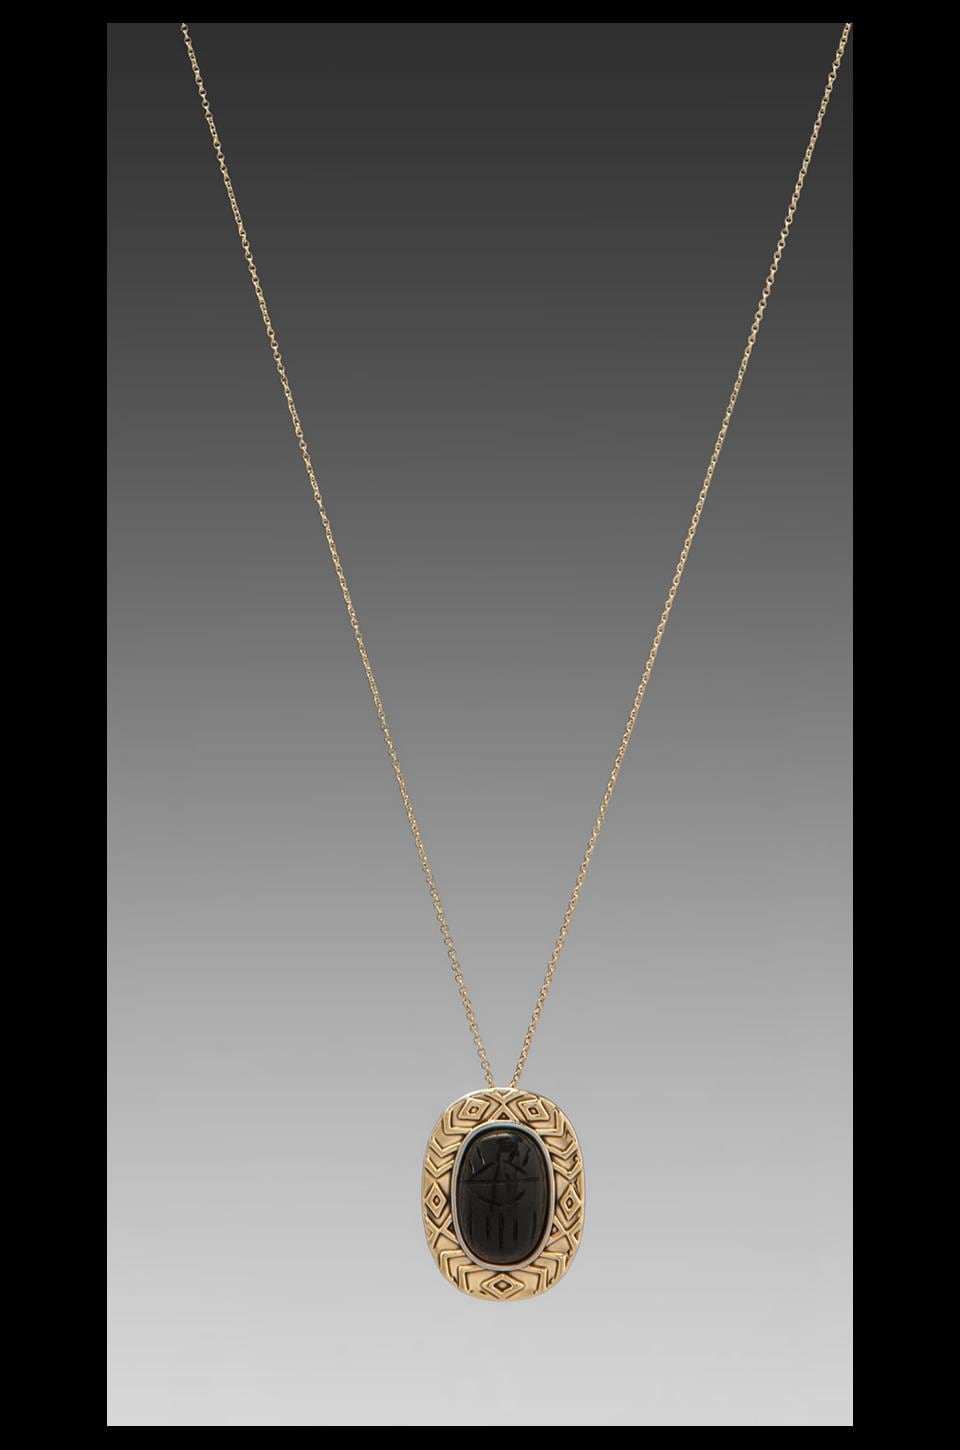 House of Harlow 1960 House of Harlow Heart Scarab Necklace in Black Onyx